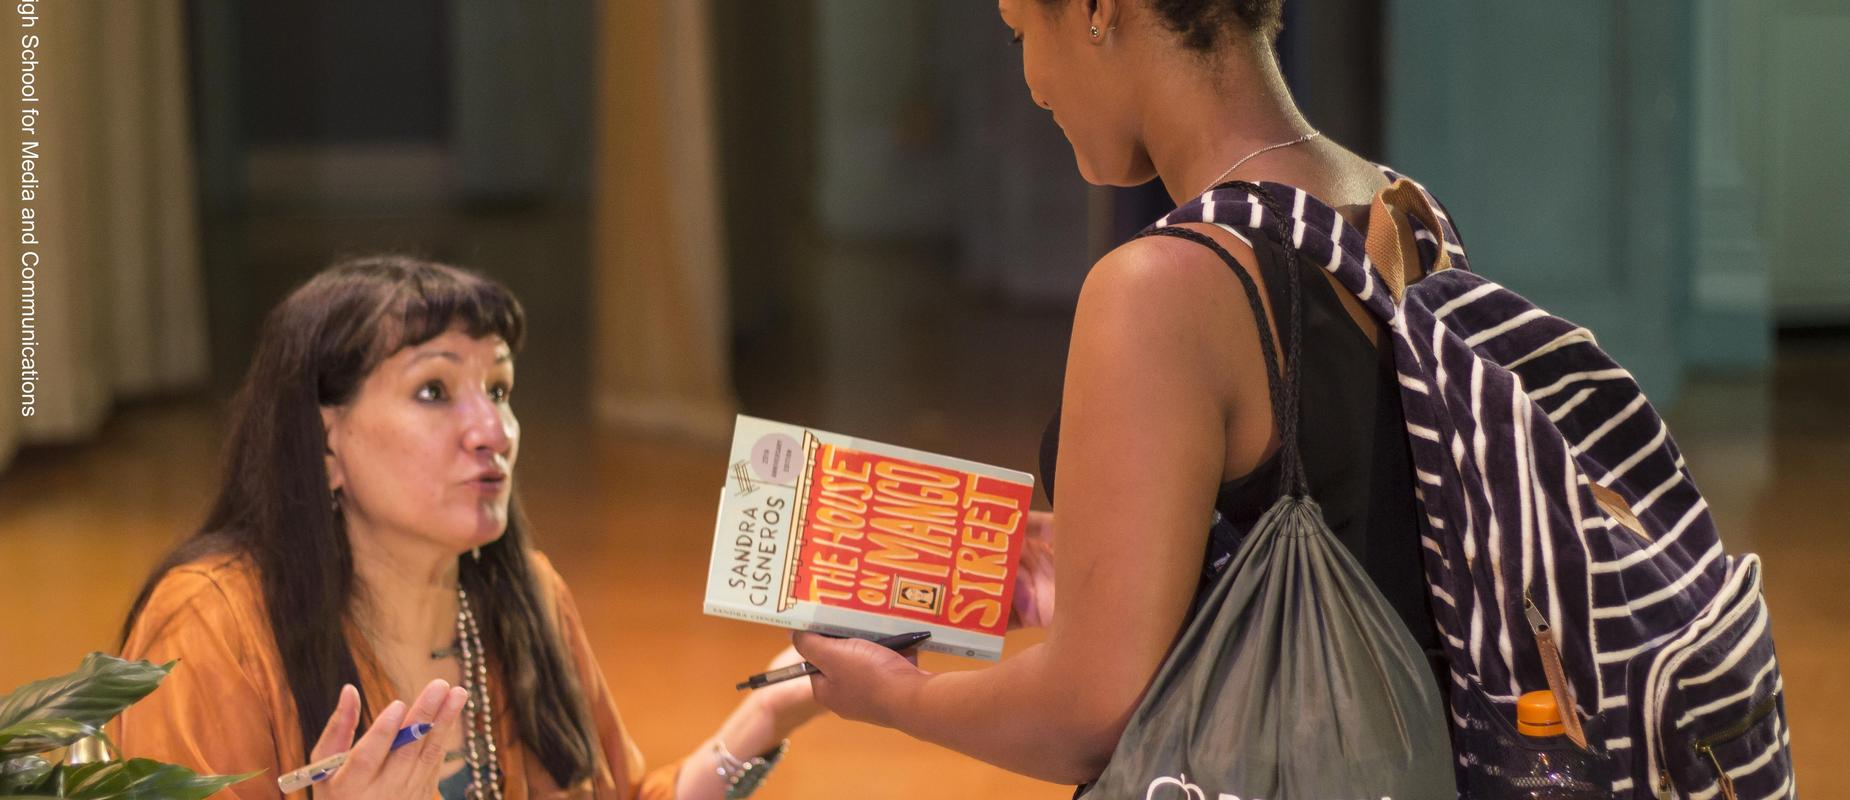 What it Takes Lecture and book signing with author Sandra Cisneros.